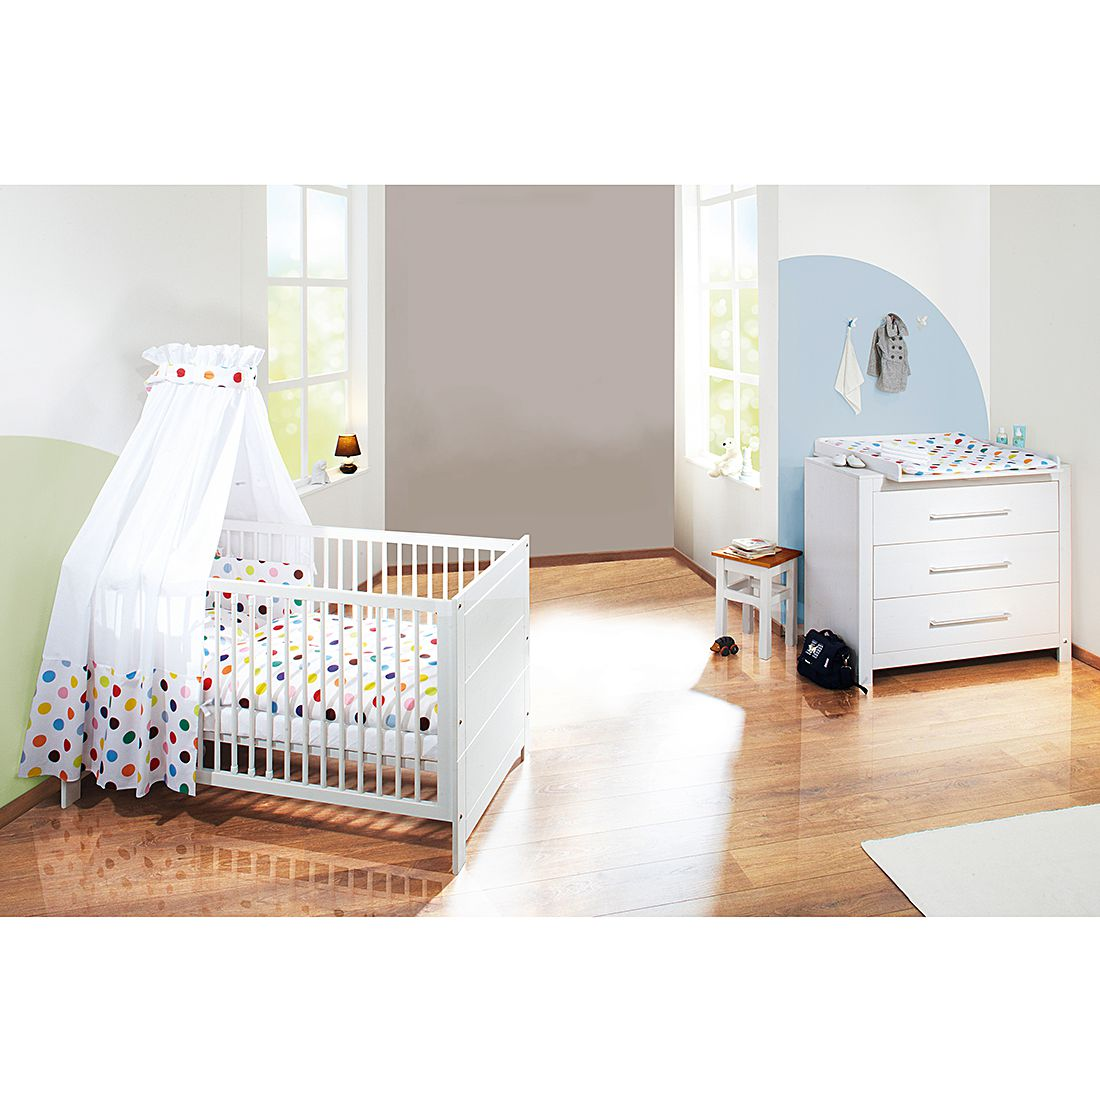 sparset rock star 2 teilig babybett wickelkommode wei grau roba g nstig kaufen. Black Bedroom Furniture Sets. Home Design Ideas